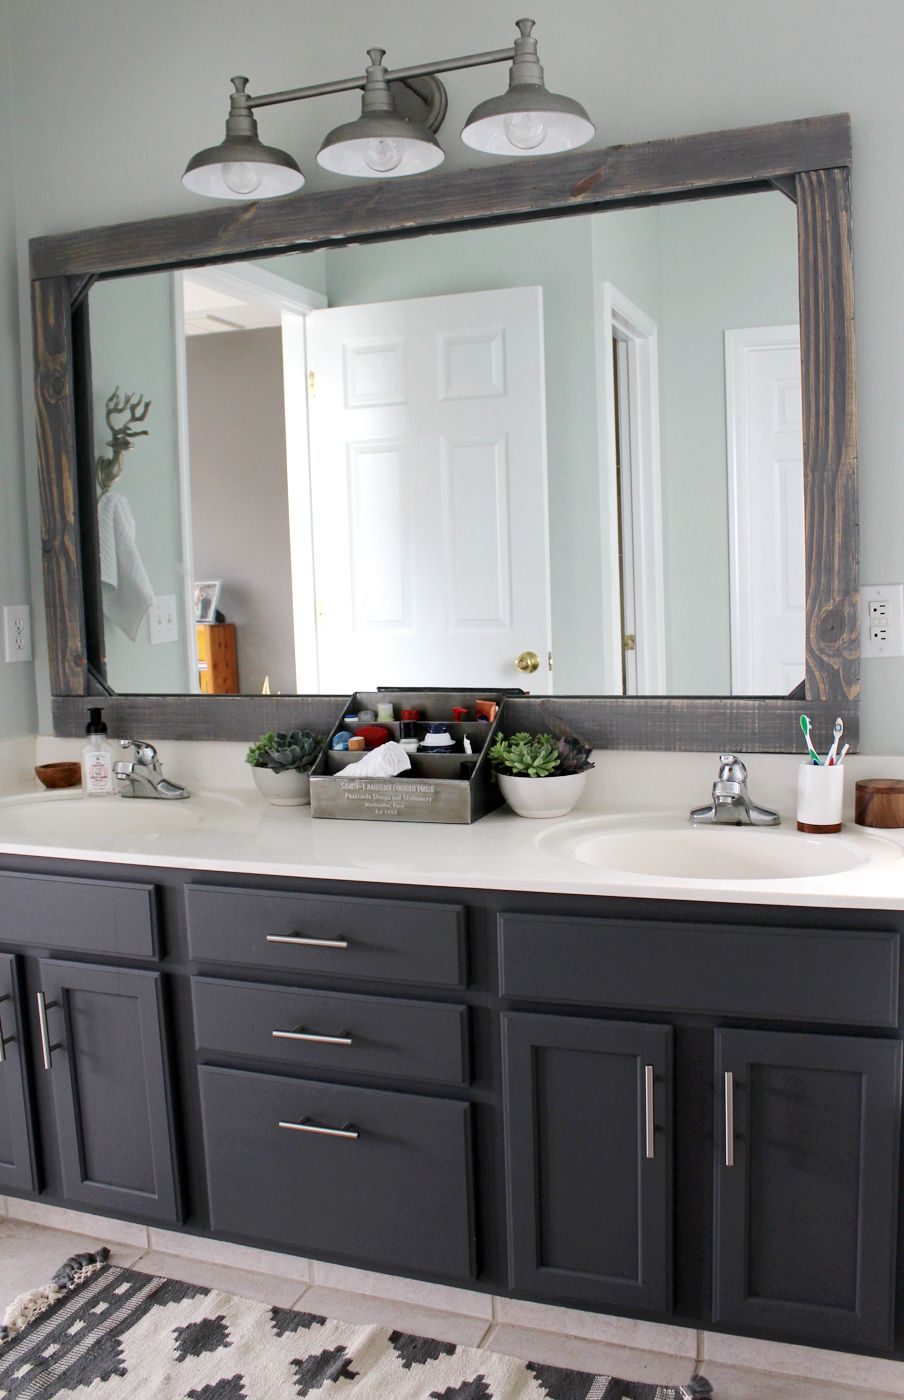 How To Frame A Mirror With Wood Tag Tibby Design Bathroom Remodel Master Bathroom Mirror Design Master Bathroom Makeover